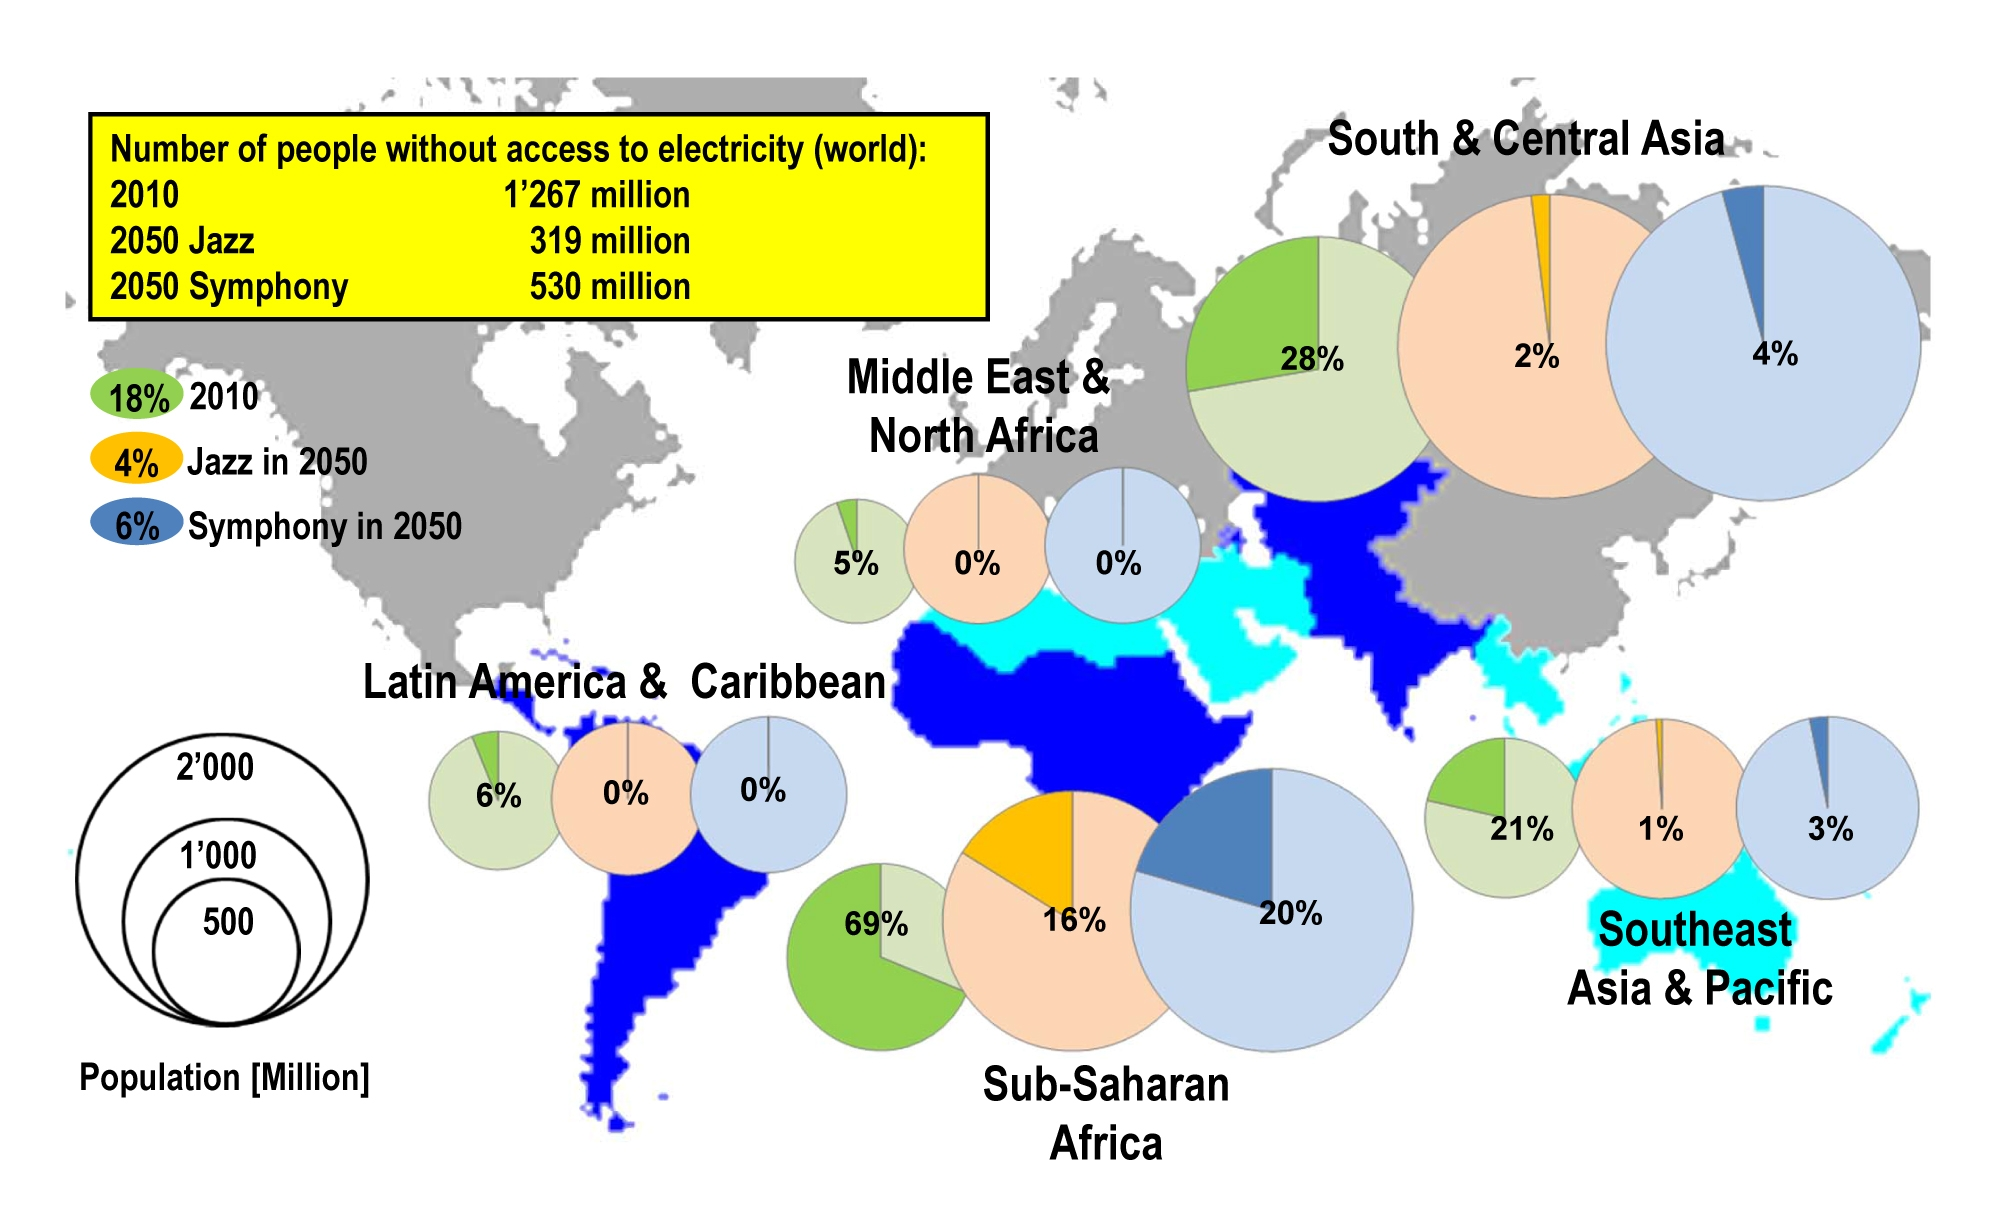 Share of the population without access to electricity in different regions, 2010 and 2050 in both scenarios. The size of the circles is proportional to the total population. Source: Paul Scherrer Institute.